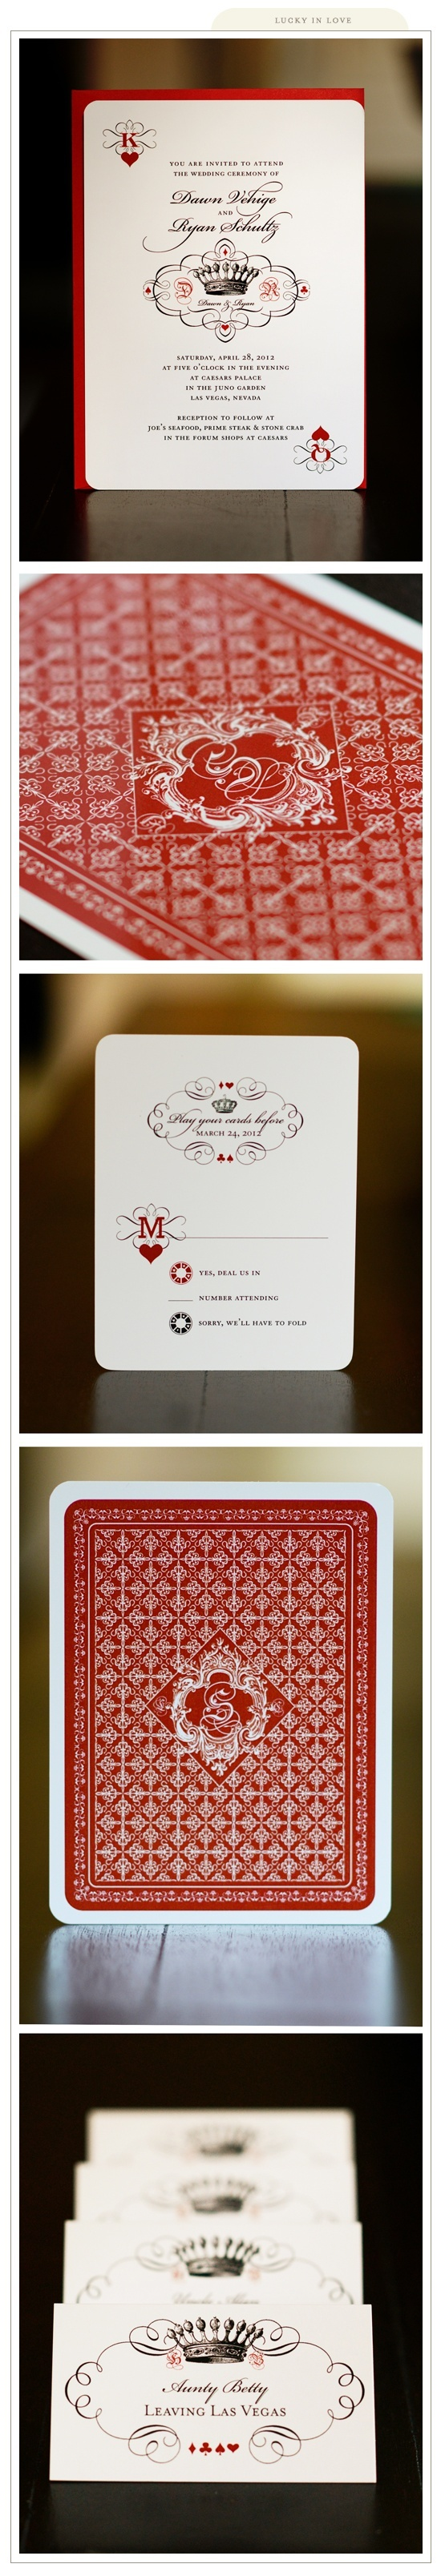 30 best Our wedding dreams 8.18.12 images on Pinterest | Wedding ...